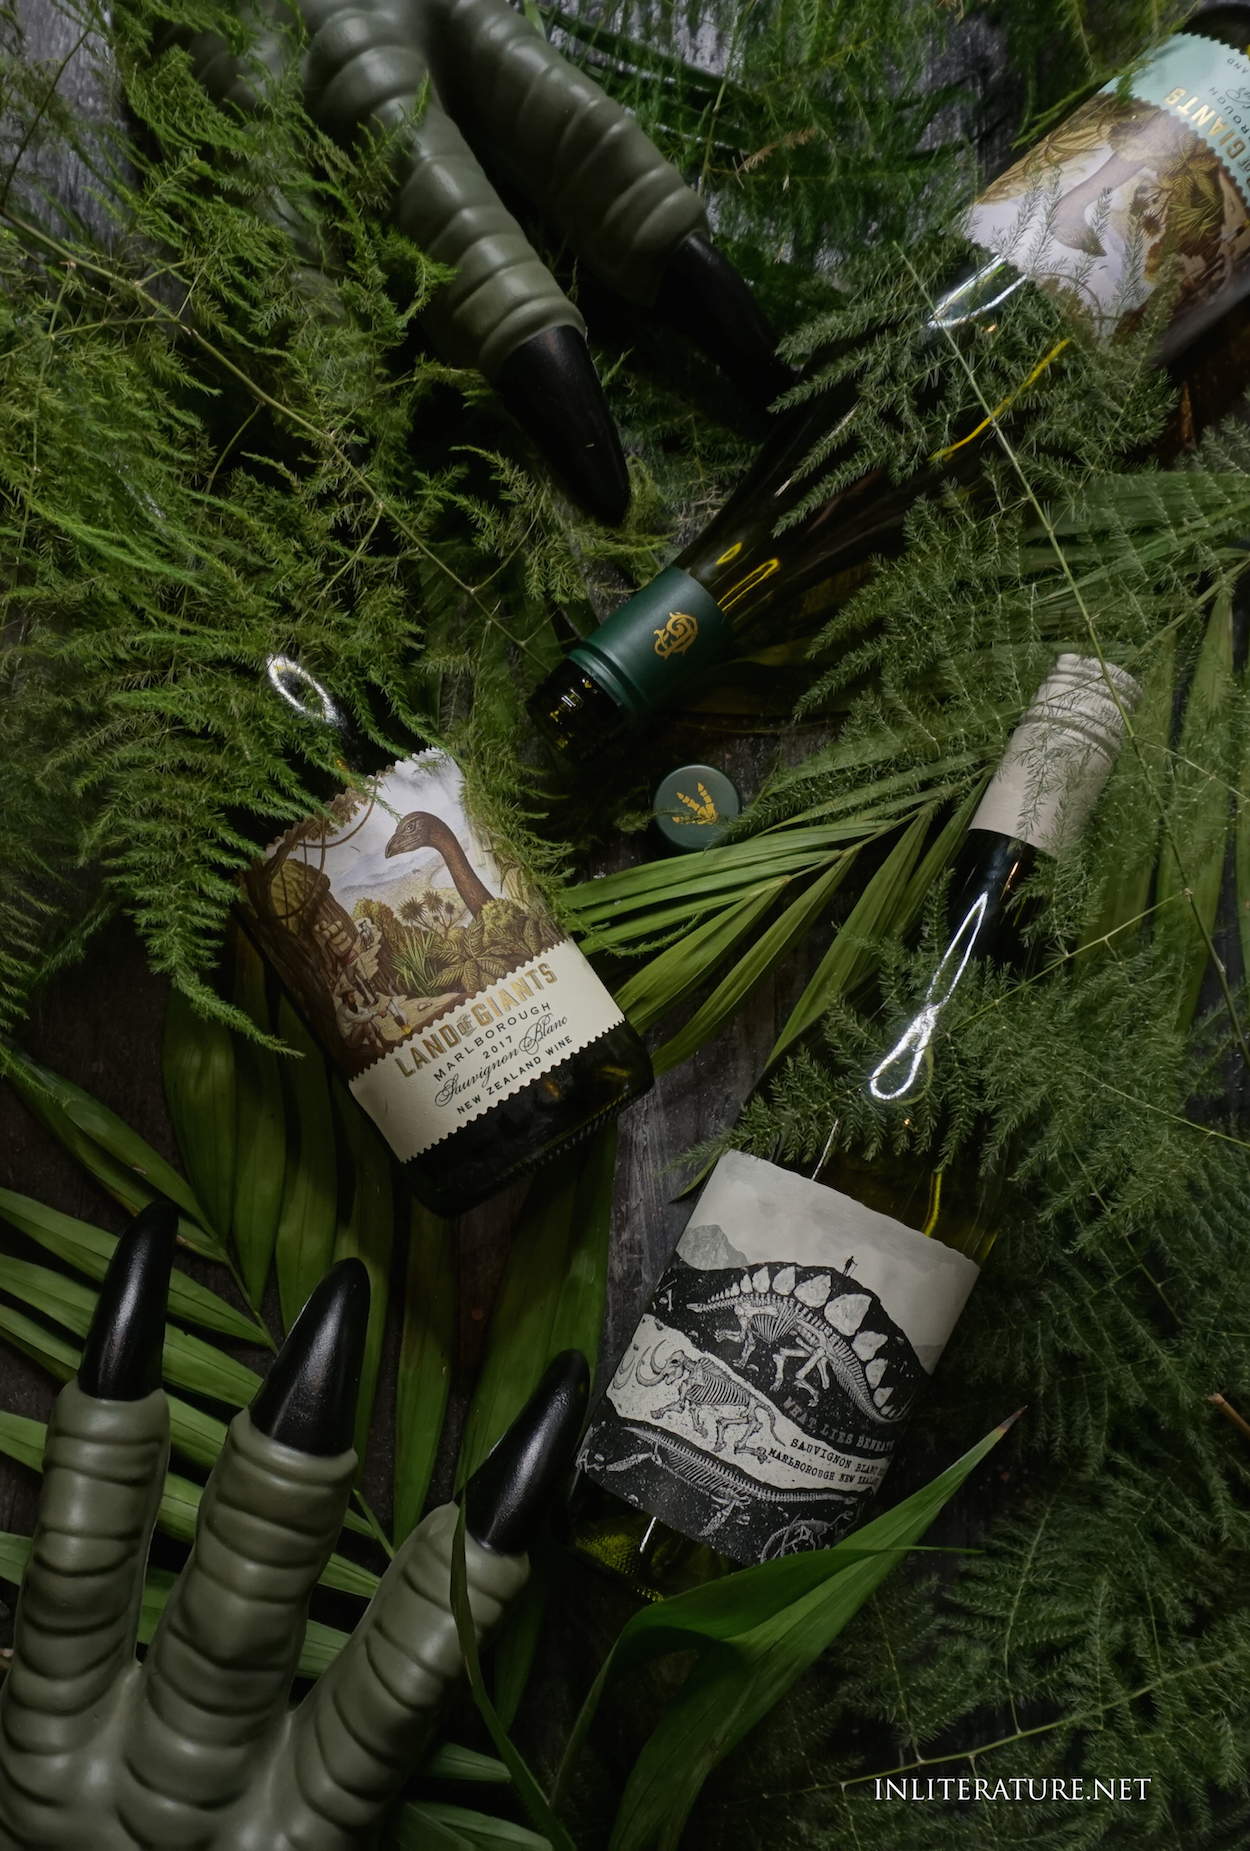 Team up these dinosaur themed wines in Australia for your Jurassic Park dinner party.